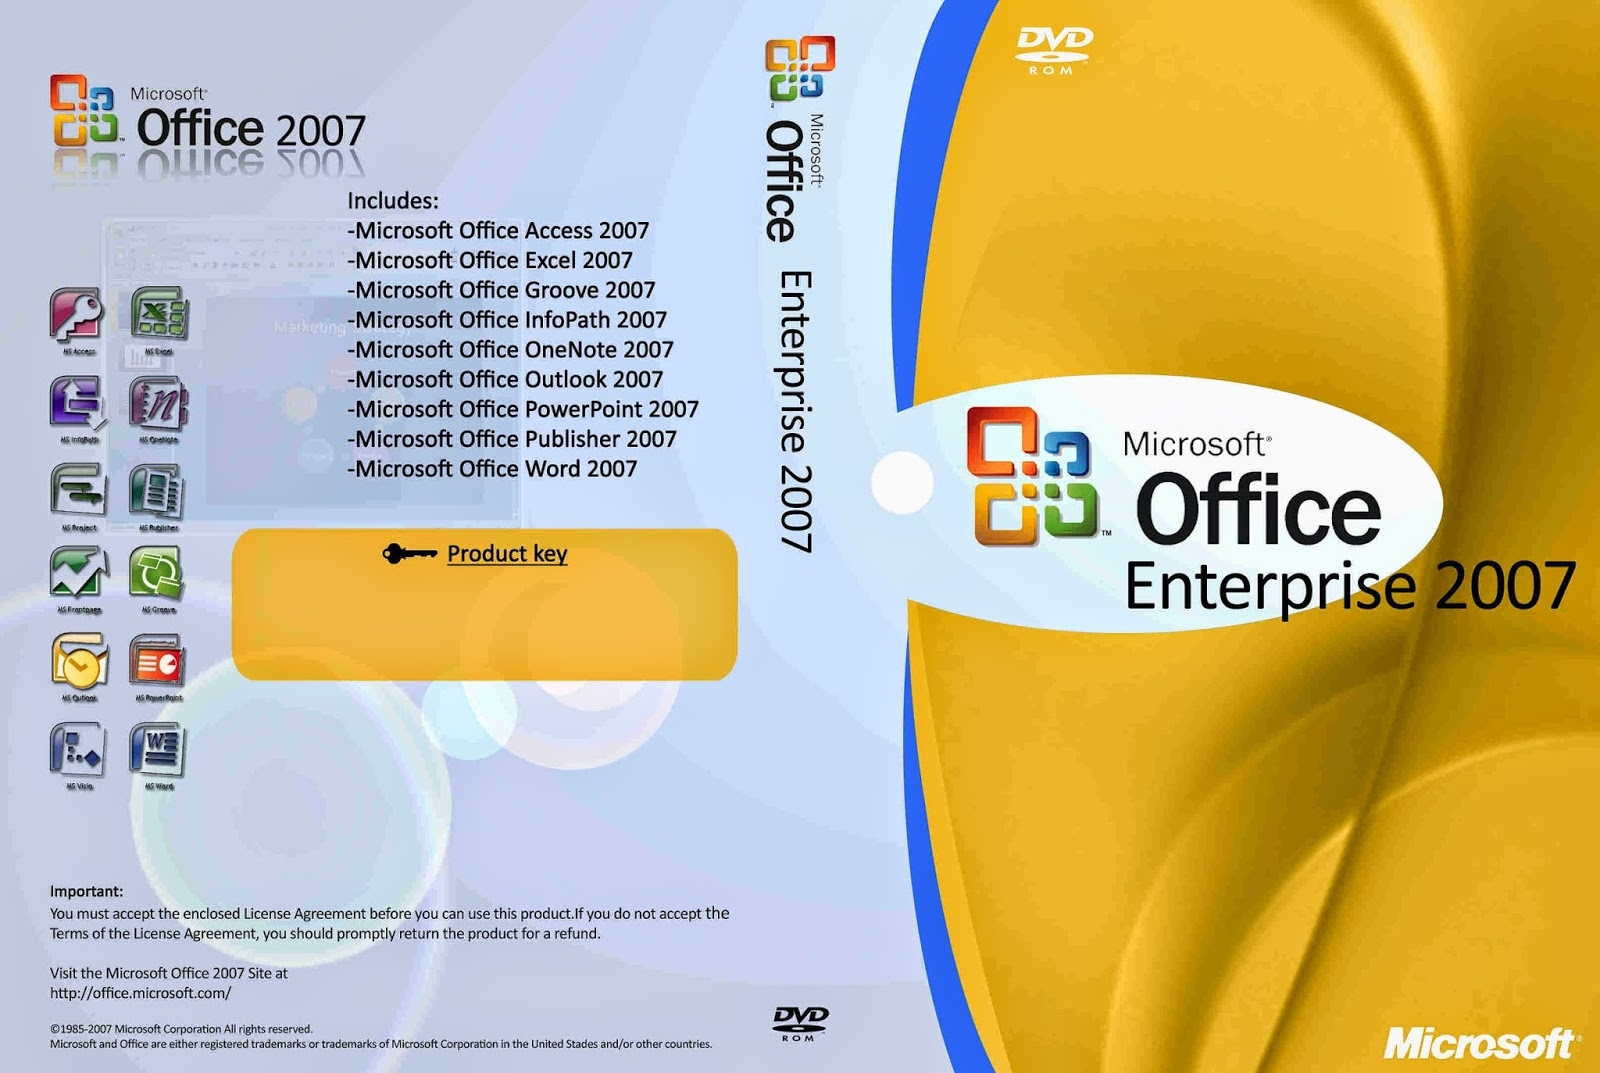 office enterprise 2007  Free Download Cover Designer: Microsoft Office 2007 - Enterprise